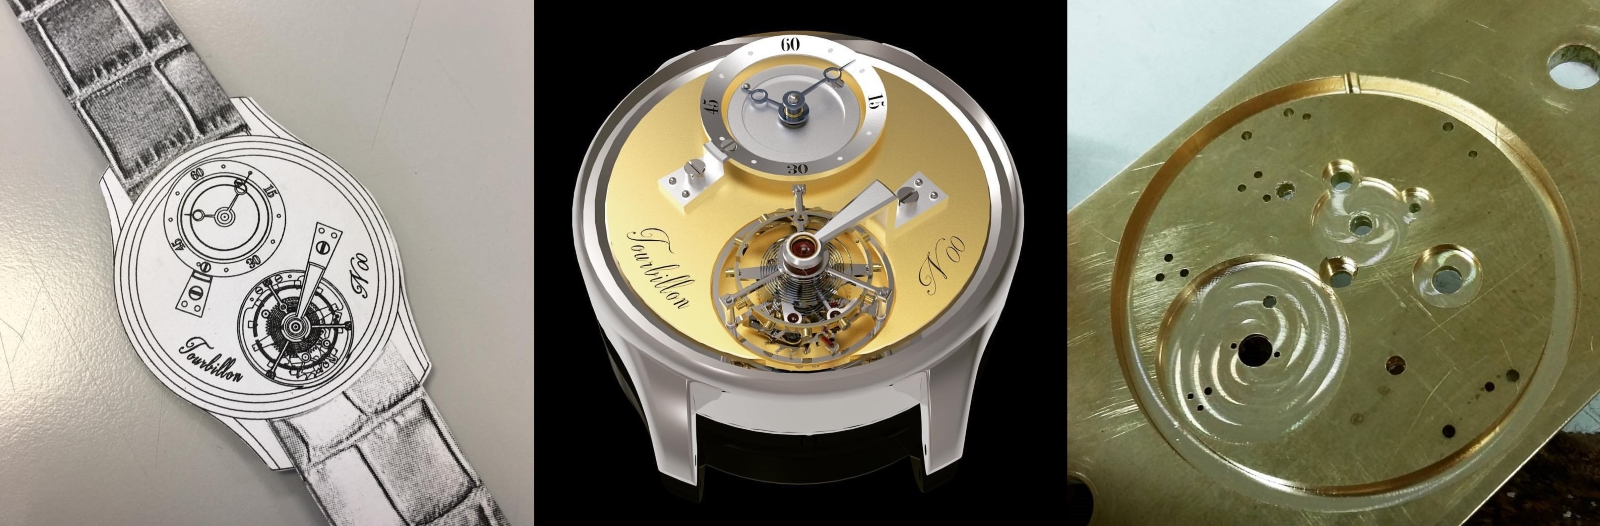 Commissioning Watch Art - Remy Cools (A)